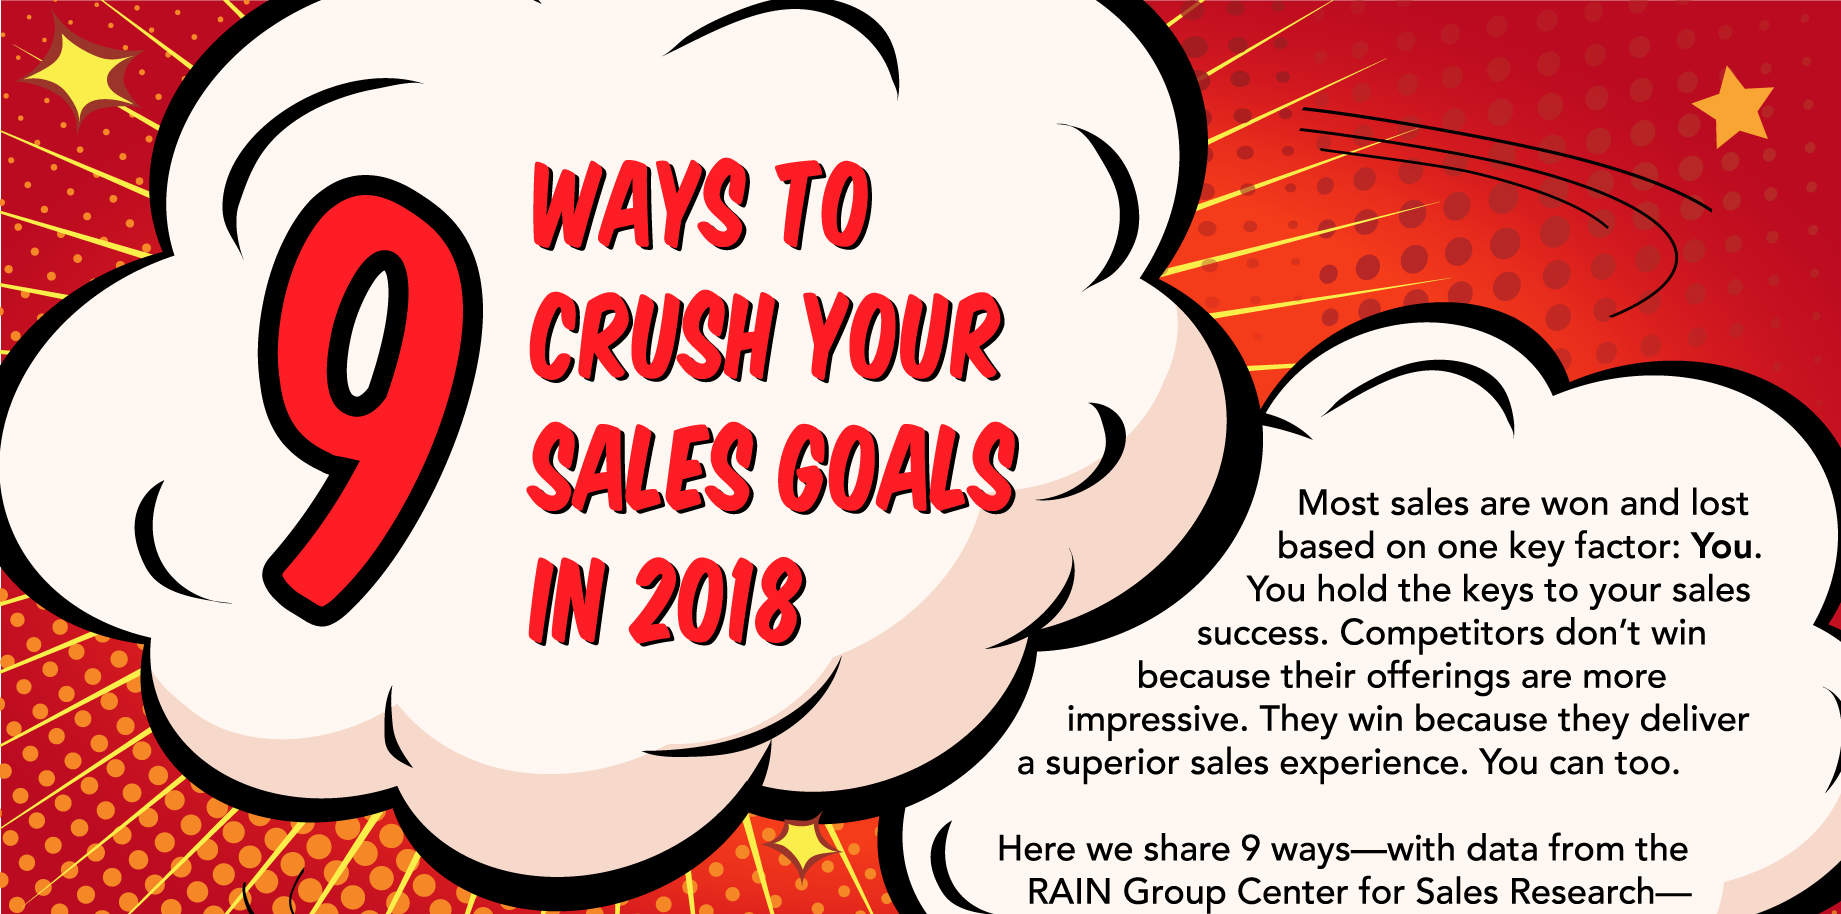 c33df1a9a 9 Ways to Crush Your Sales Goals in 2018 by Mike Schultz - SalesPOP!